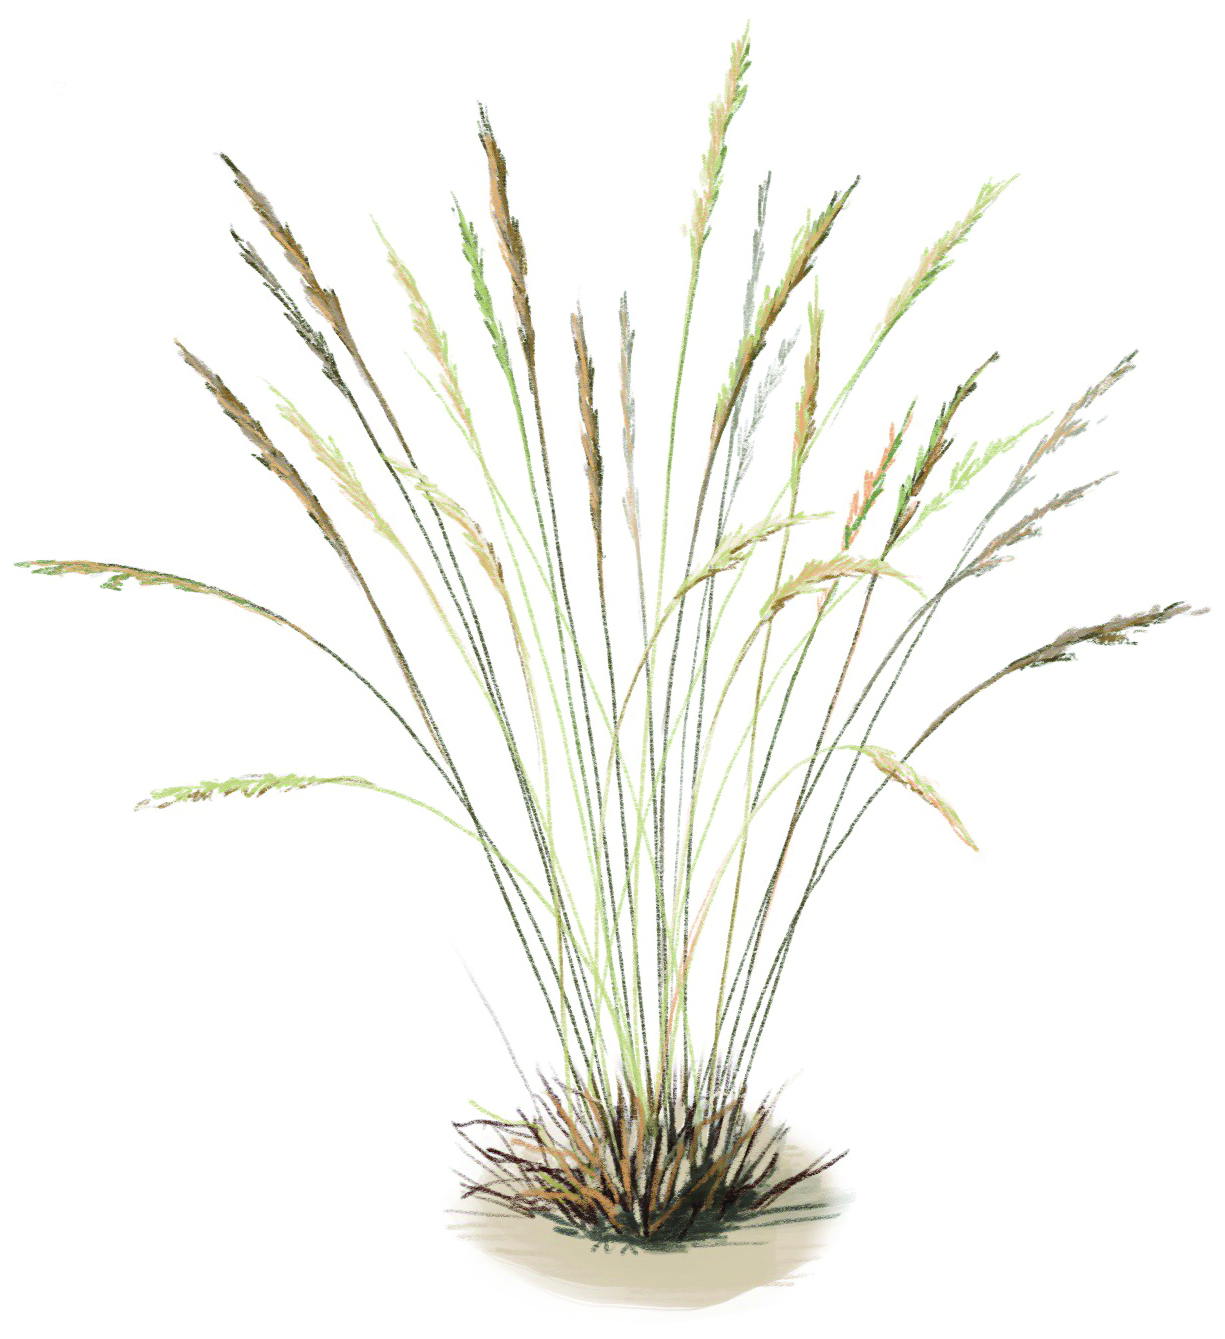 Small perennial bunchgrasses